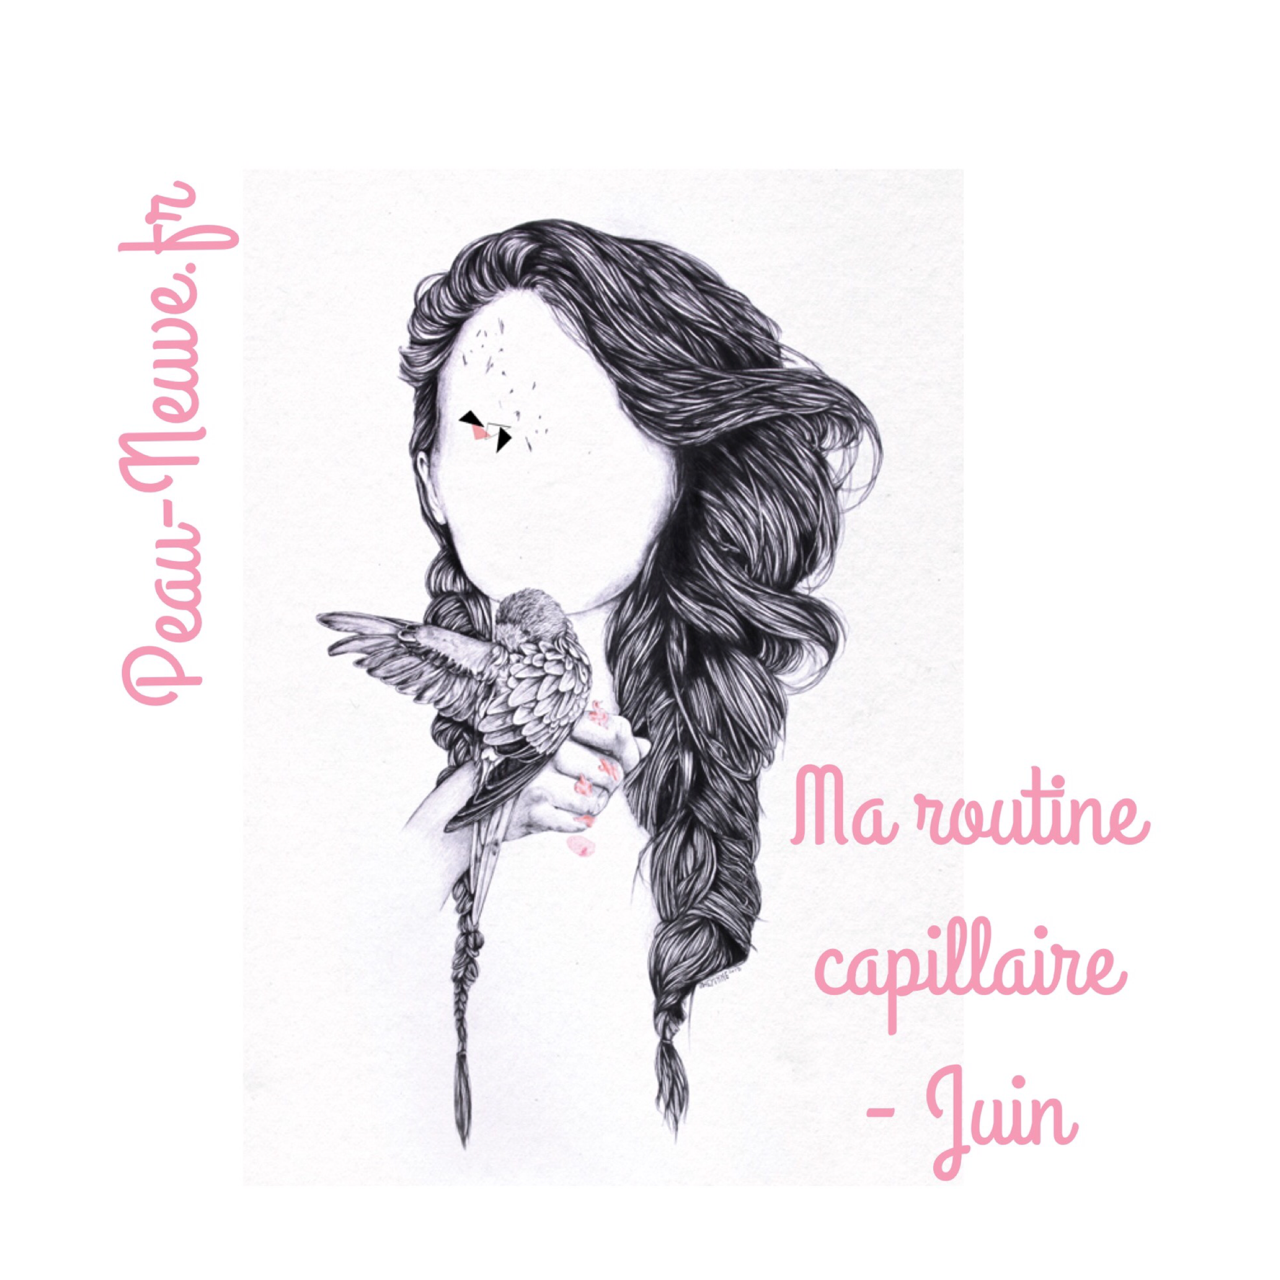 Ma routine capillaire – JUIN